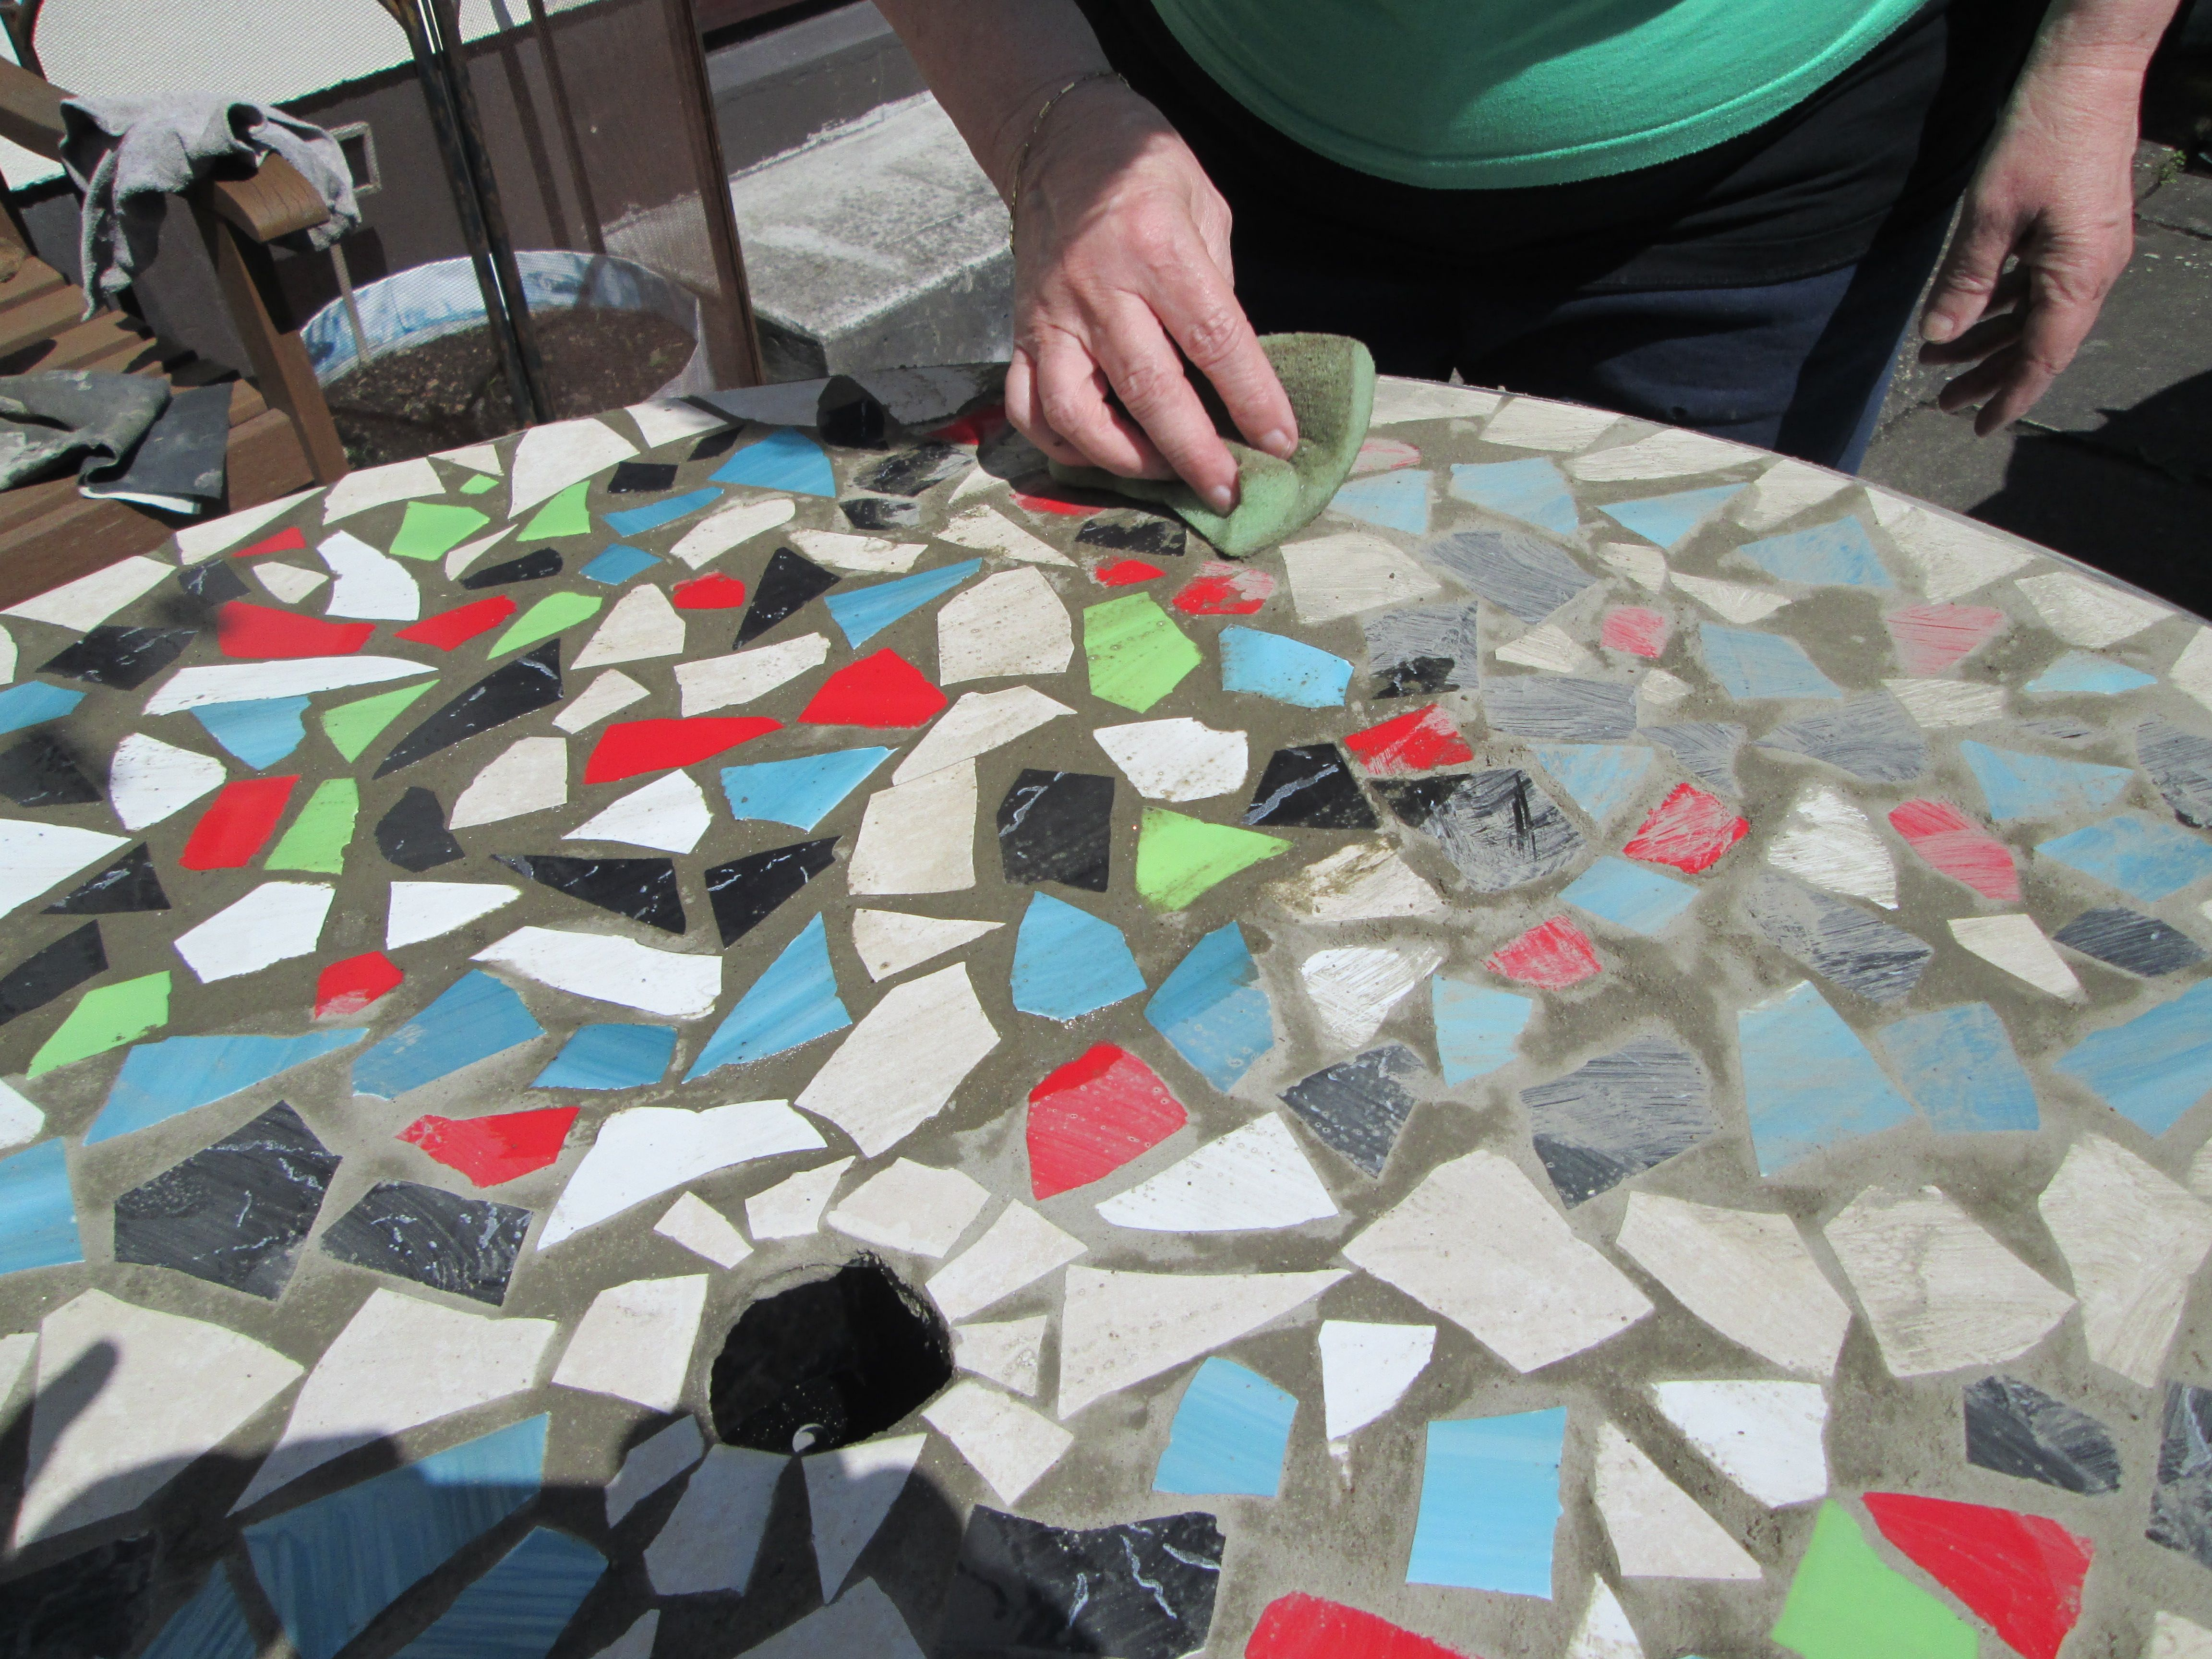 How to Design a Mosaic Tabletop With Ceramic Tiles | Pinterest ...